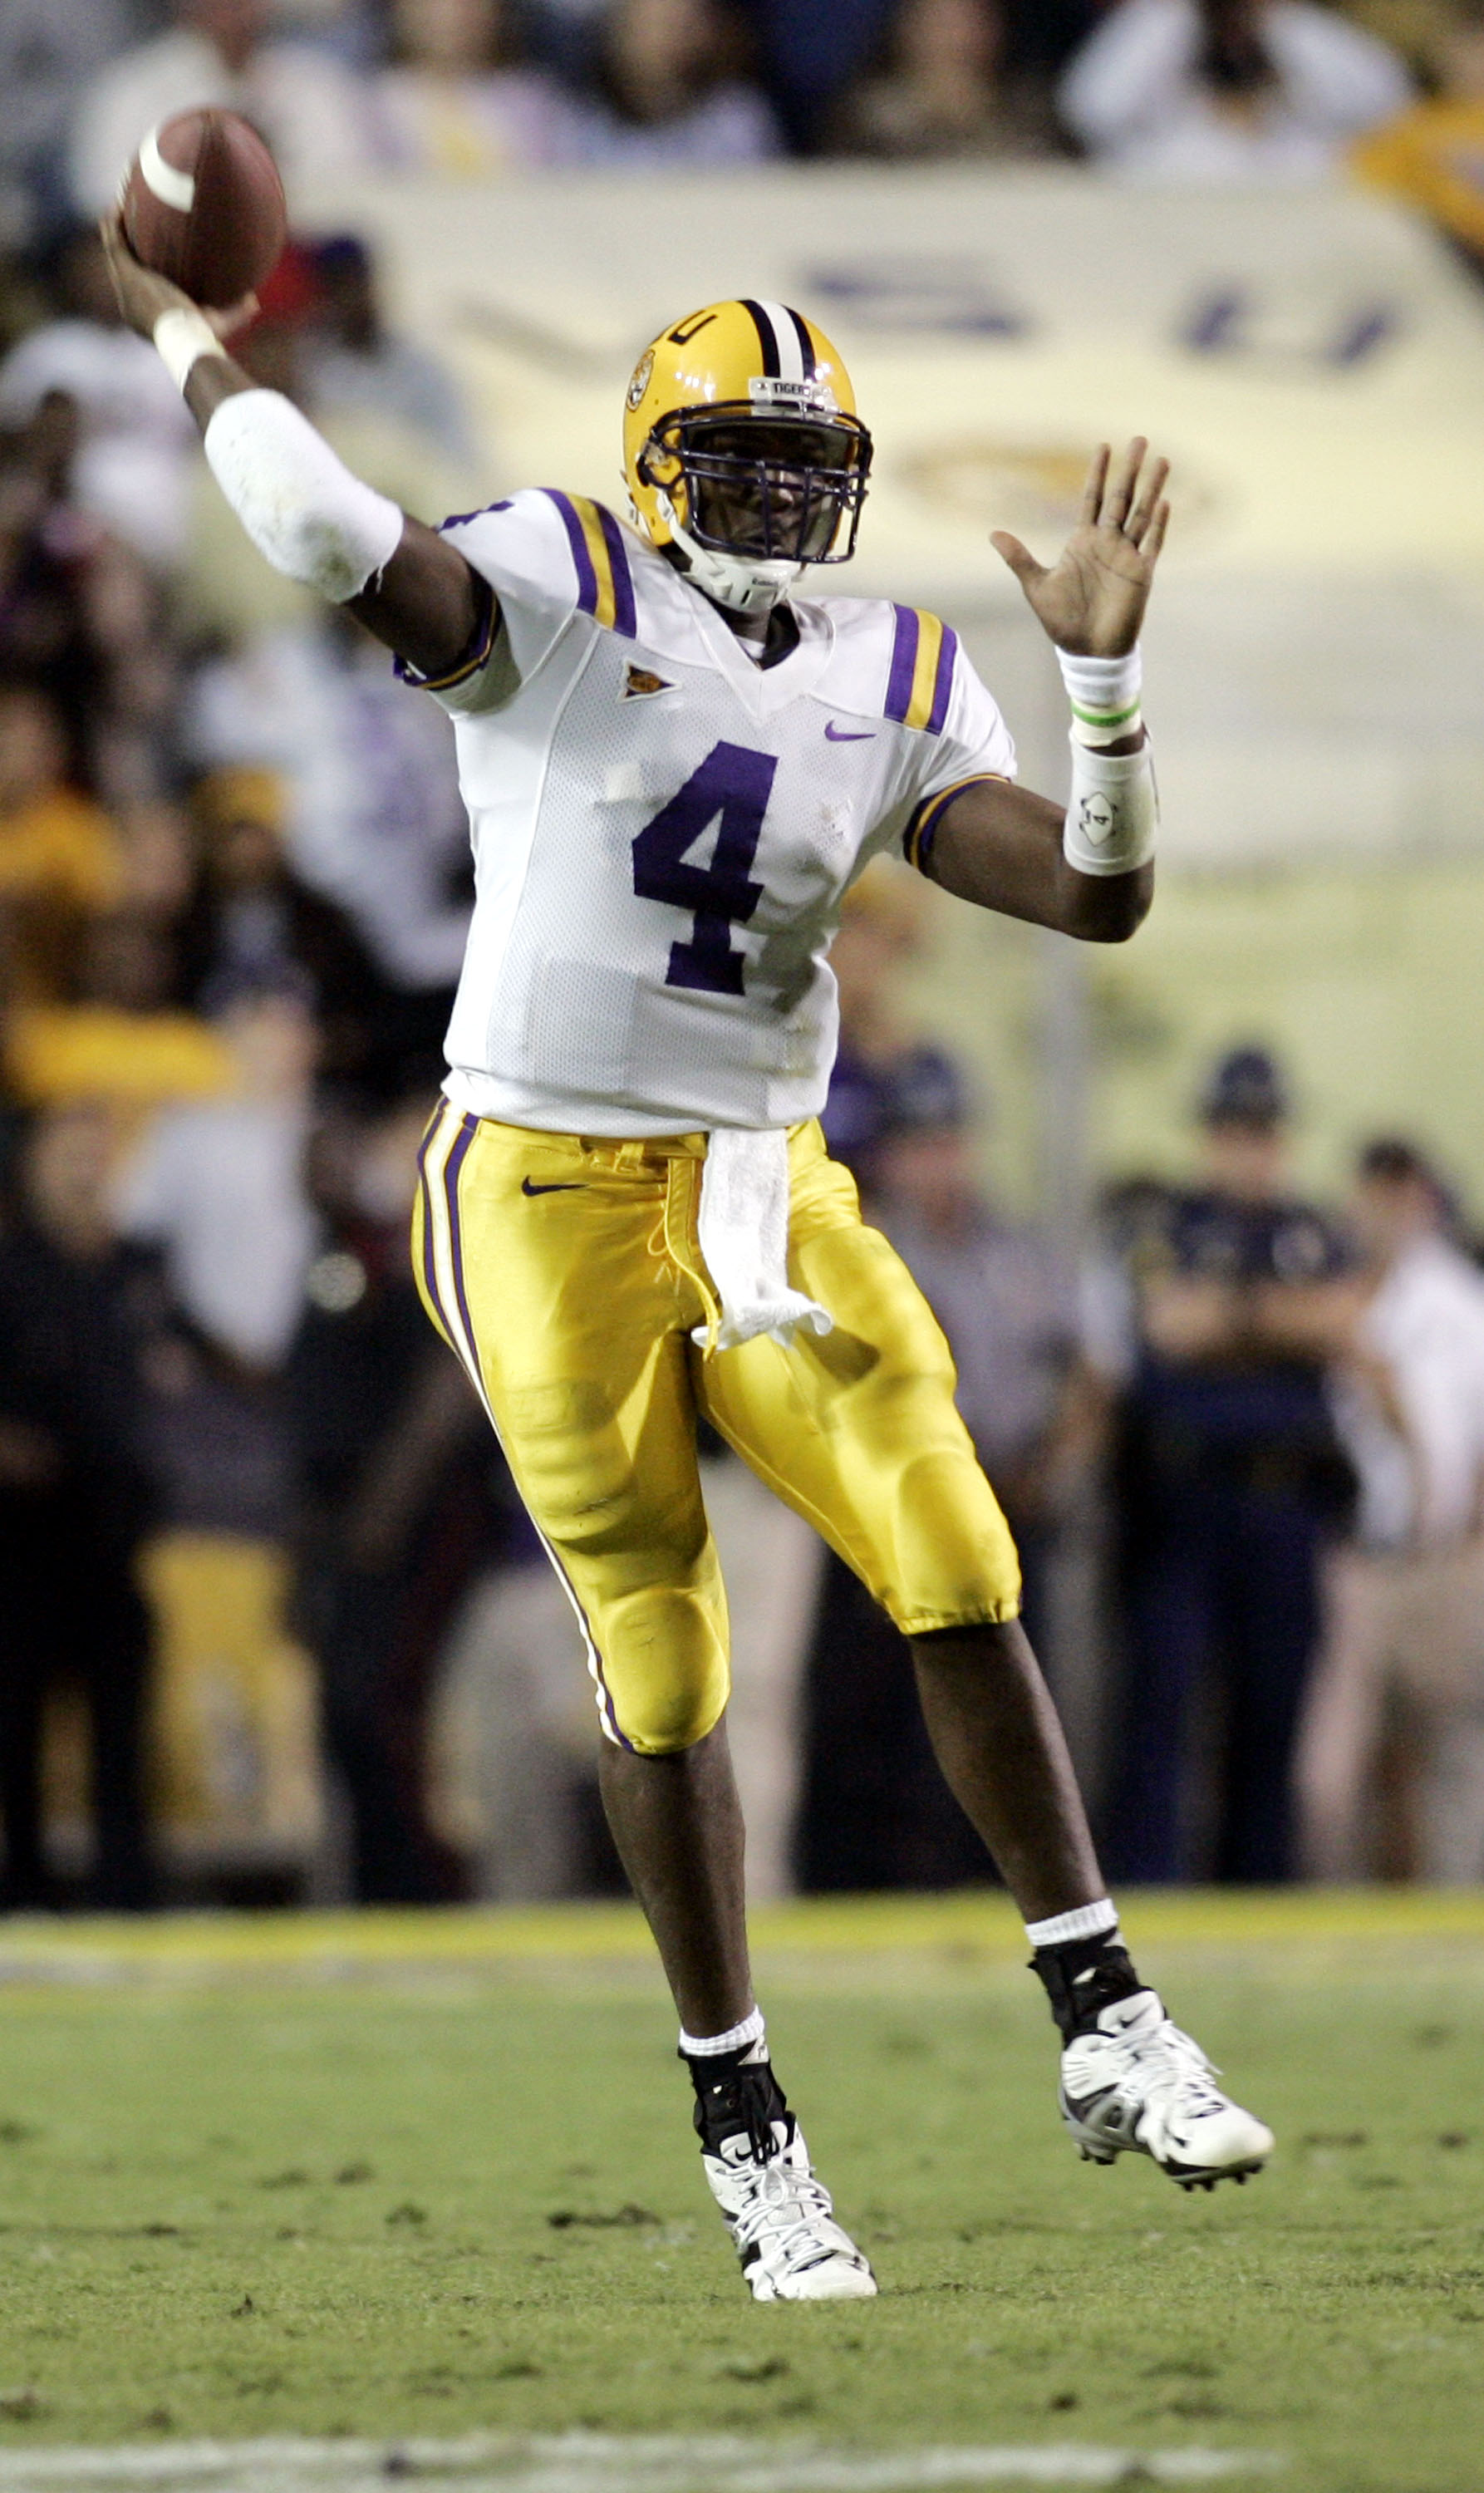 BATON ROUGE, LA - OCTOBER 22:  Quarterback JaMarcus Russell #4 of Louisiana State University completes a pass against Auburn University at Tiger Stadium in Baton Rouge, Louisiana on October 22, 2005. LSU defeated Auburn 20-17 in overtime.  (Photo by Chris